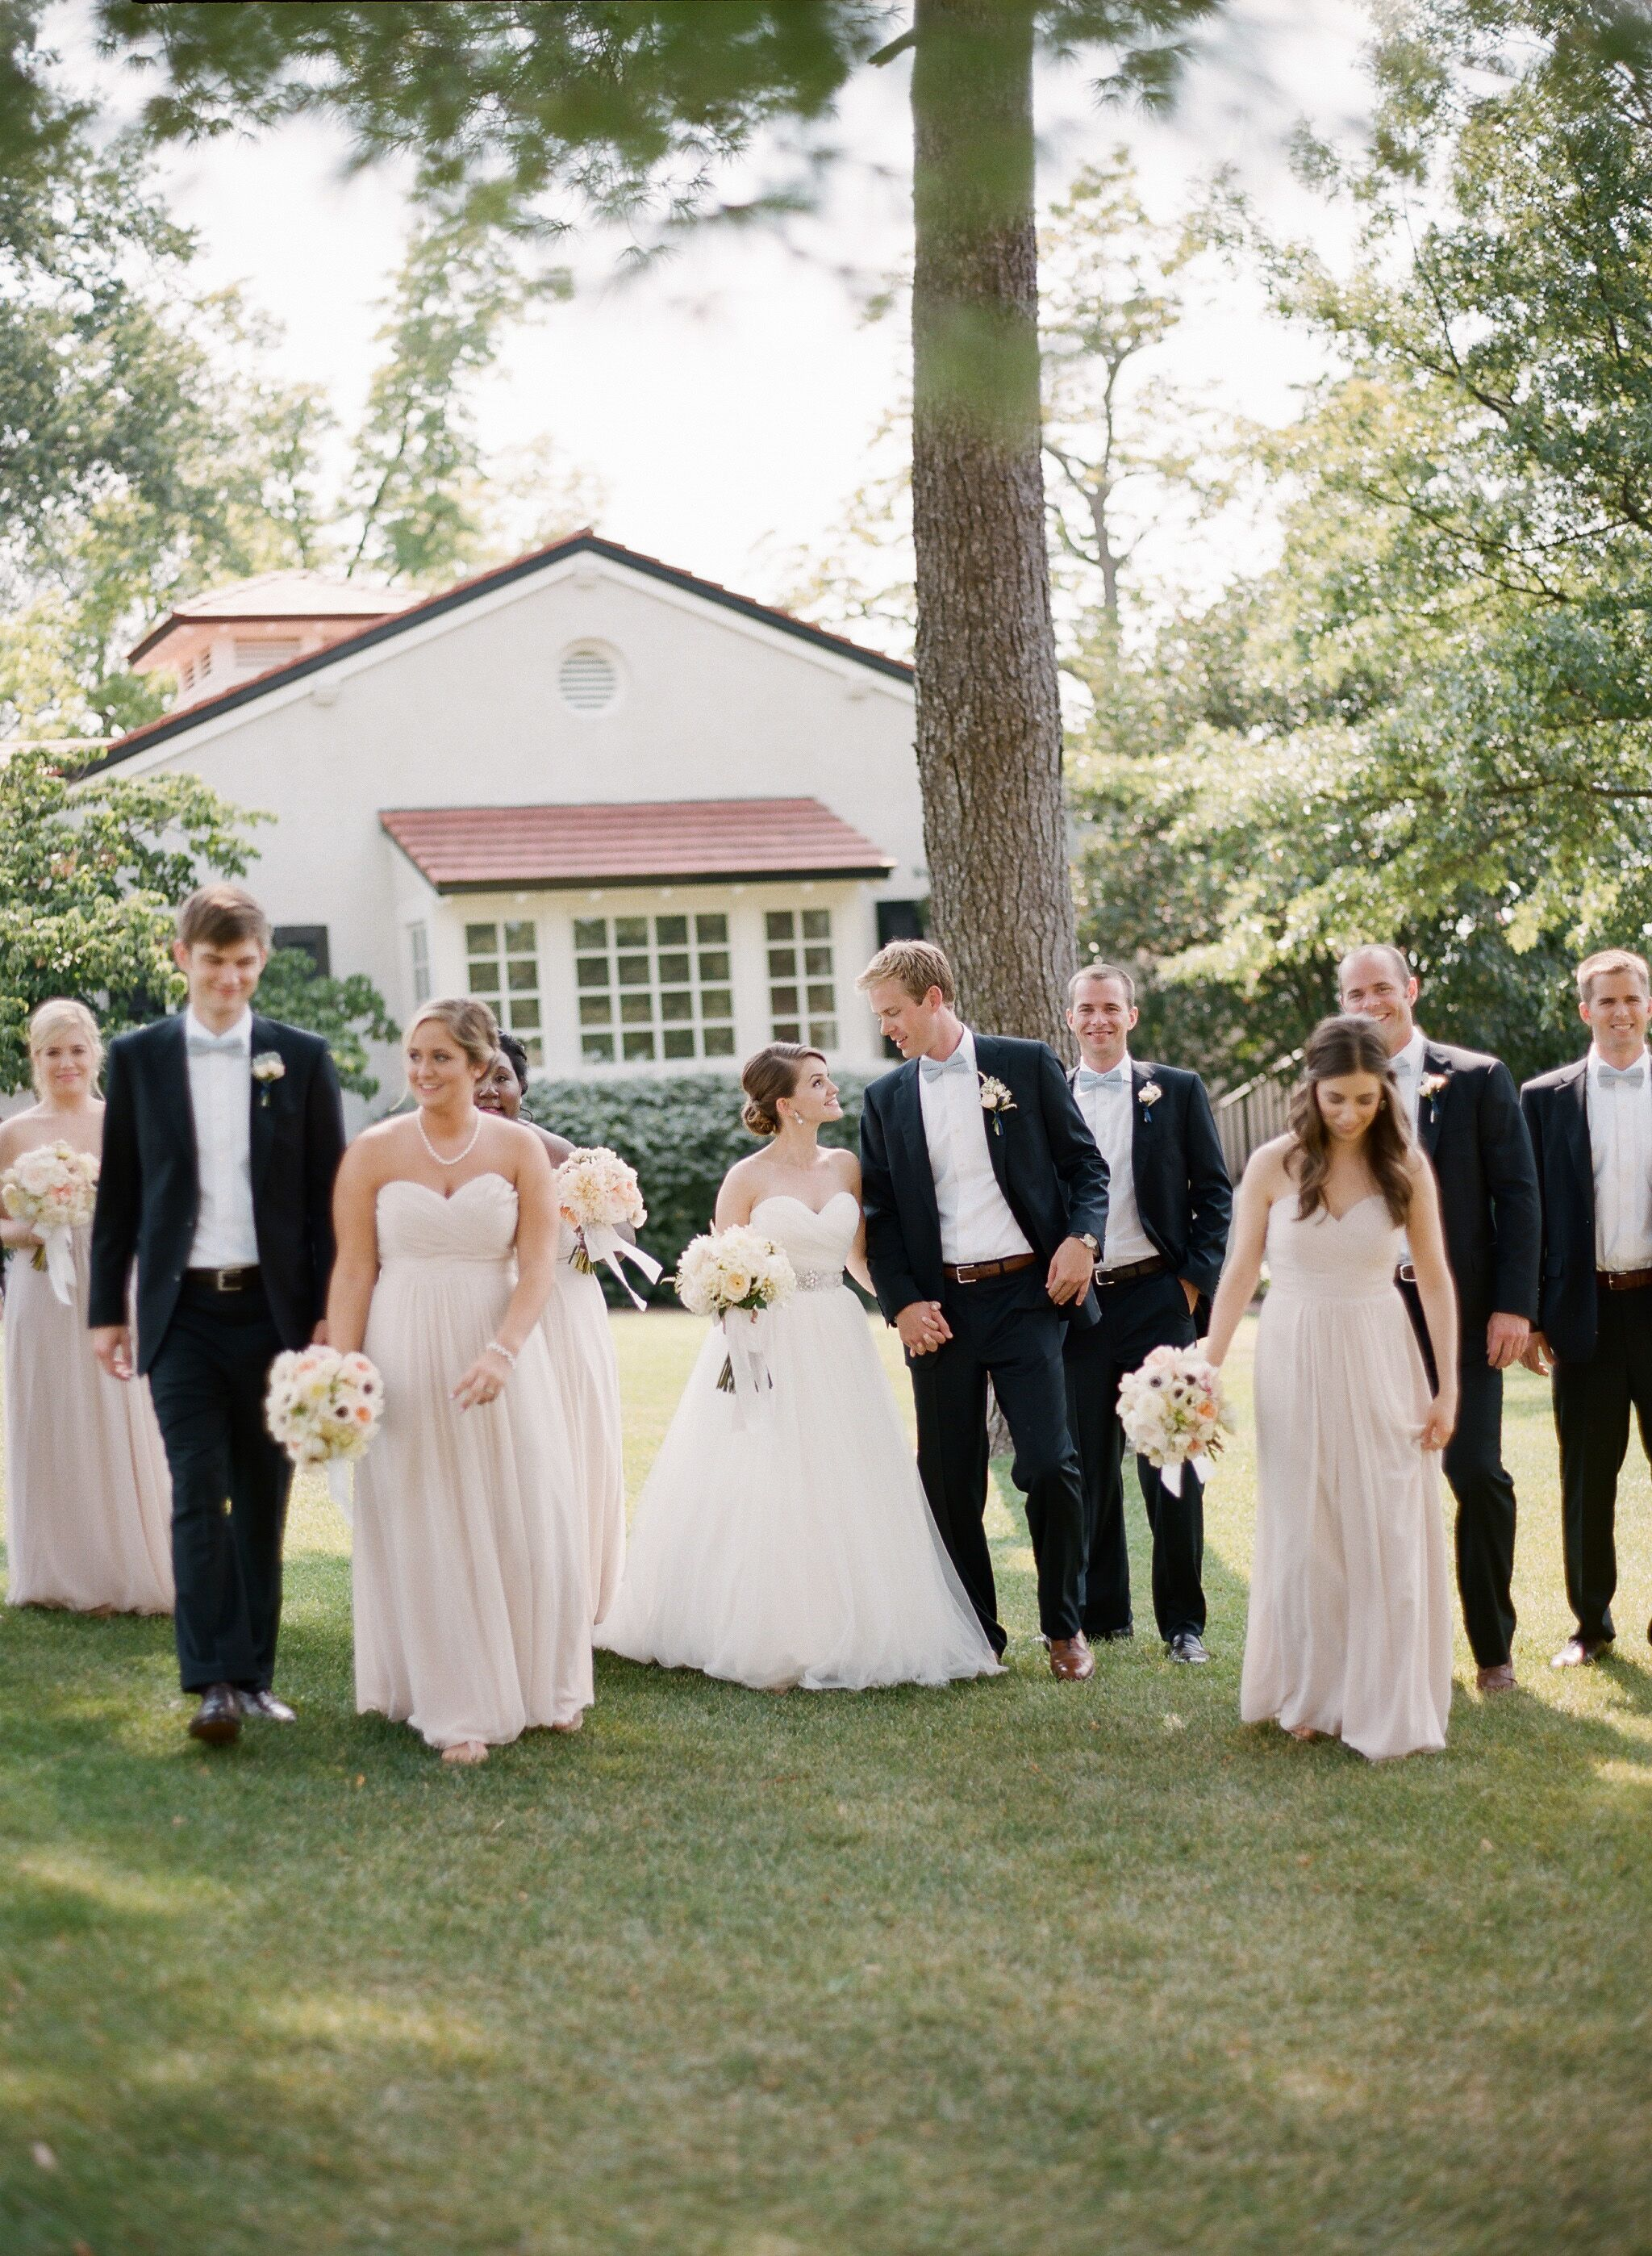 Formal Black, White And Champagne Wedding Party Attire